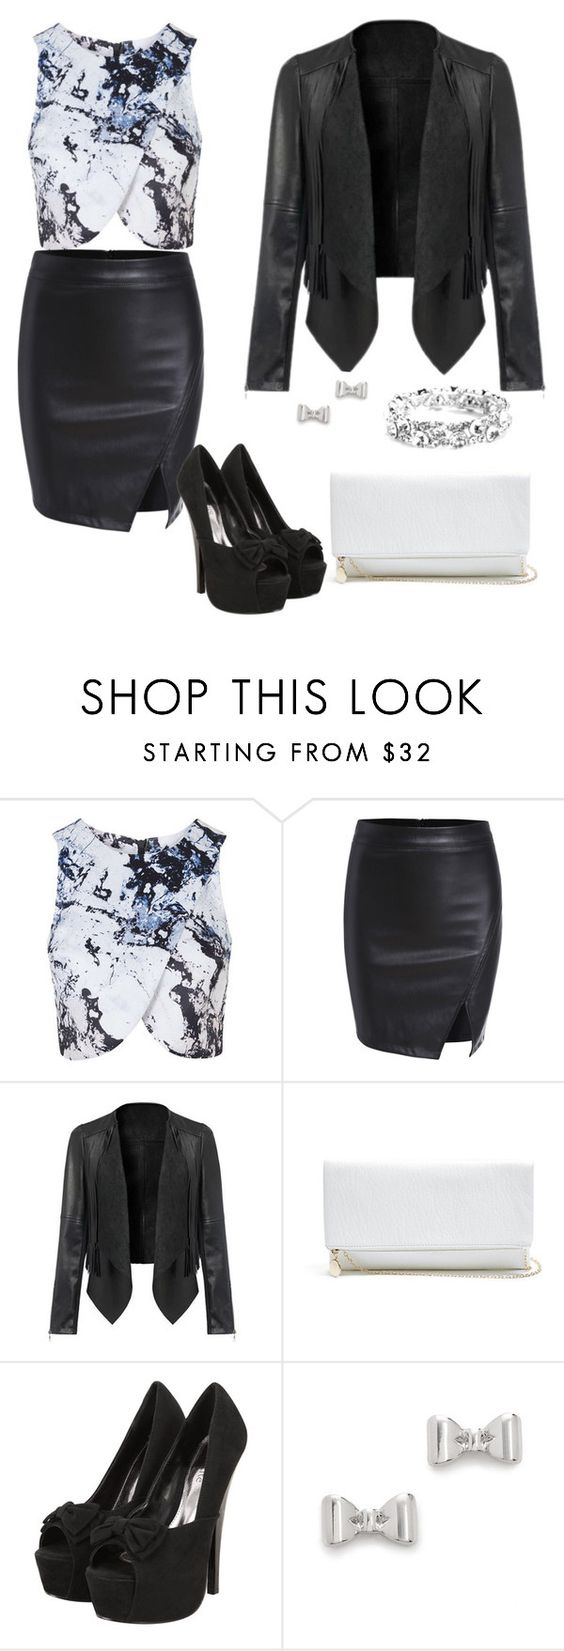 """Outwear#79"" by elusiin ❤ liked on Polyvore featuring Topshop, GUESS and Marc by Marc Jacobs"